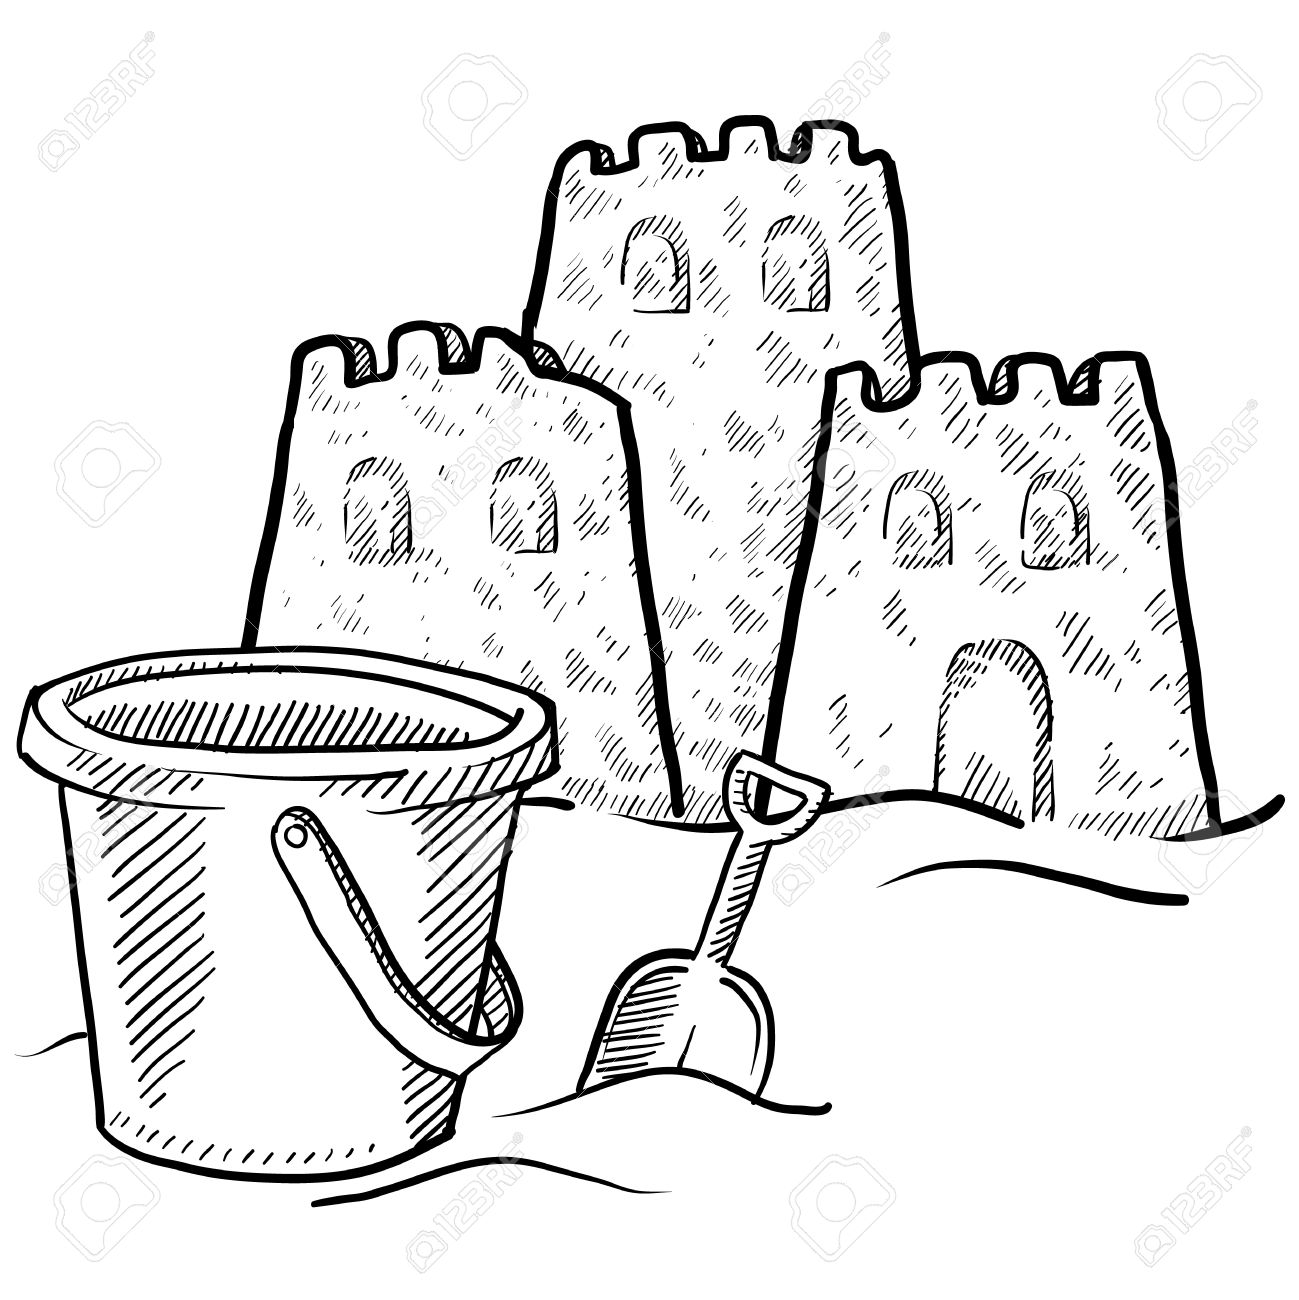 Beach sand clipart black and white clipart png stock Doodle Style Sketch Of Beach Sand Castle Construction In Illus ... png stock